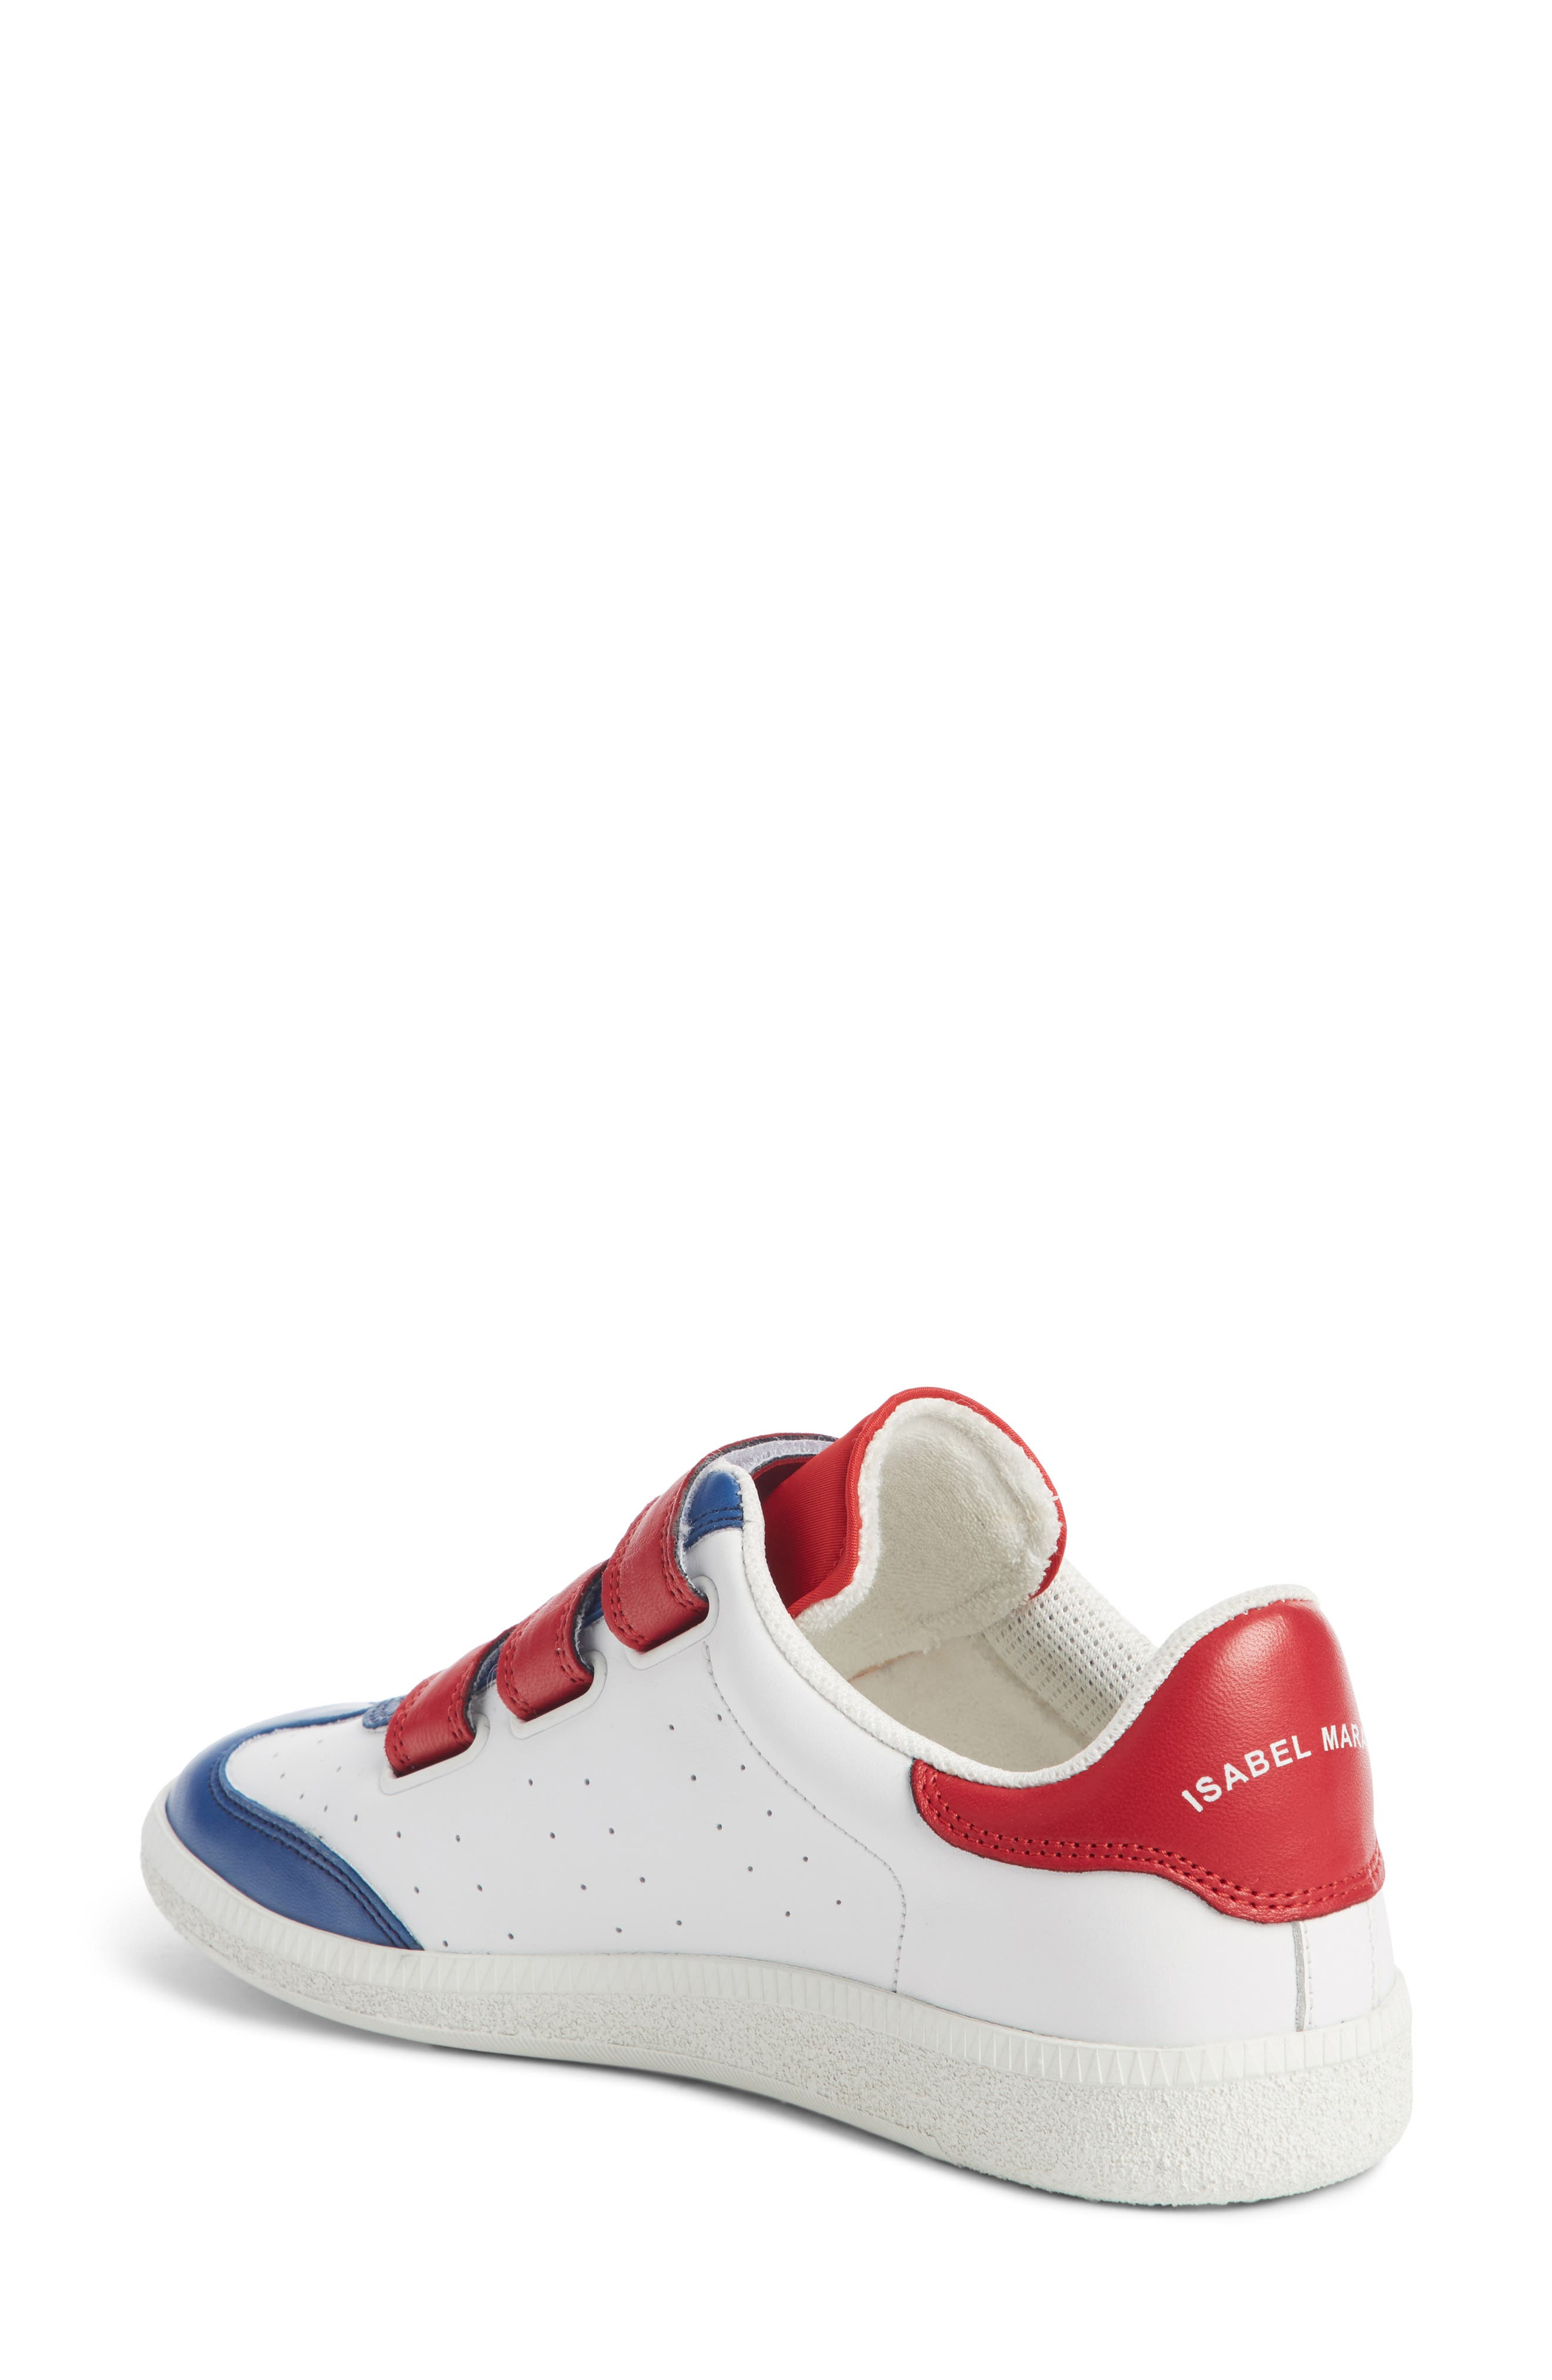 Beth Sneaker,                             Alternate thumbnail 2, color,                             White/ Blue/ Red